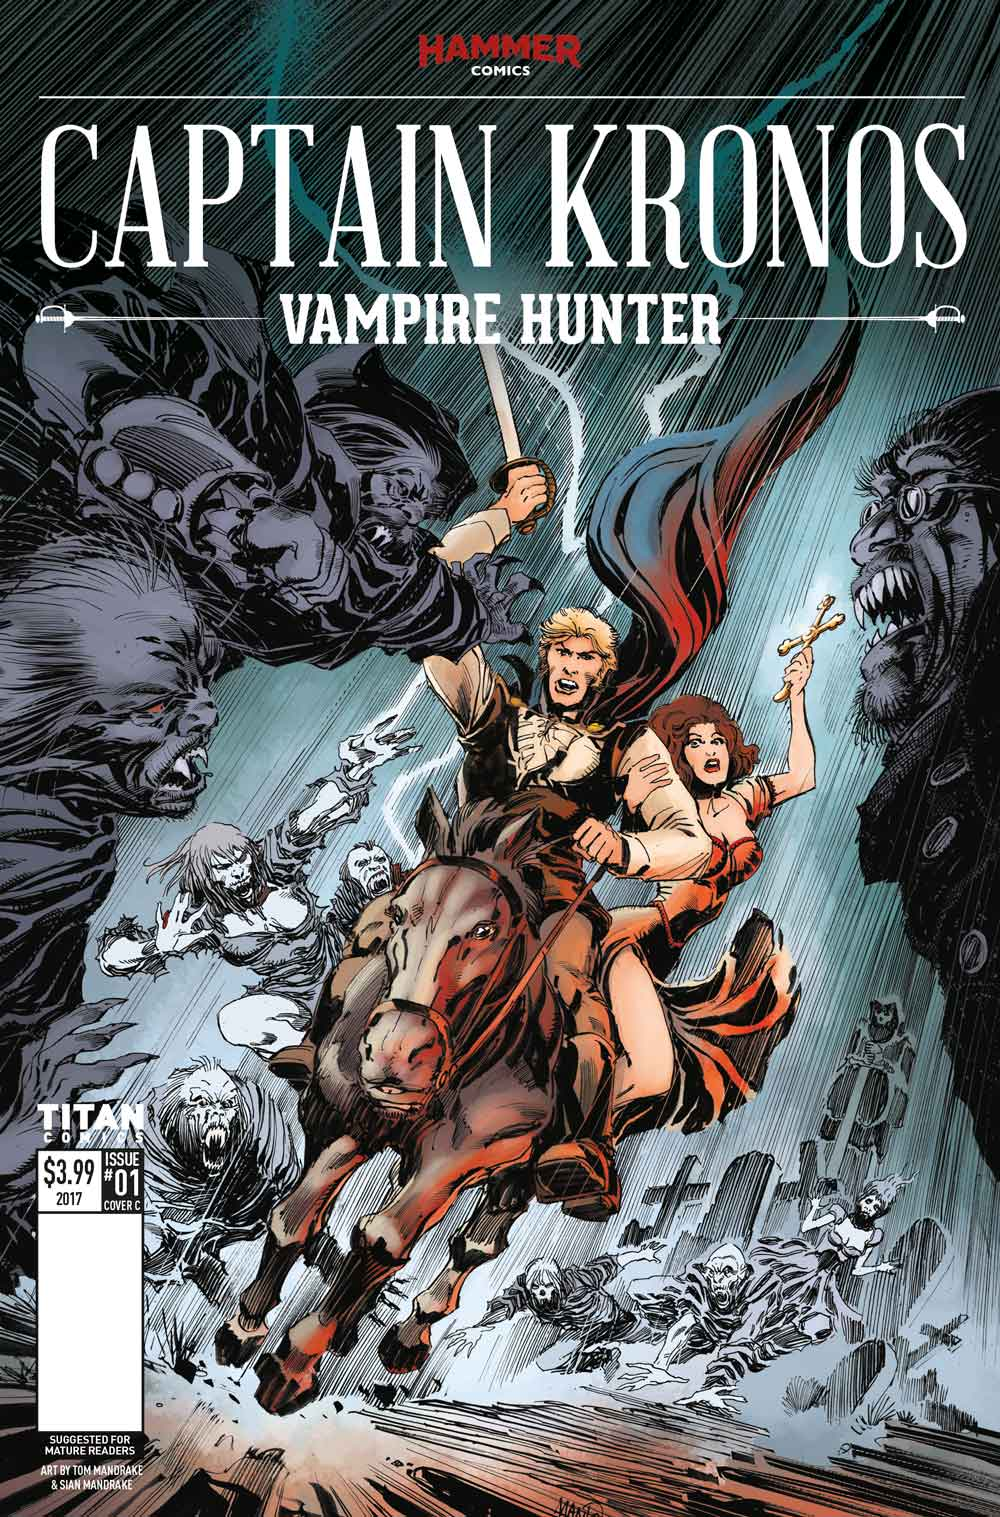 CapKronos Cover C Tom Mandrake - Exclusive Reveal of Color Pages from Hammer Horror's Captain Kronos: Vampire Hunter